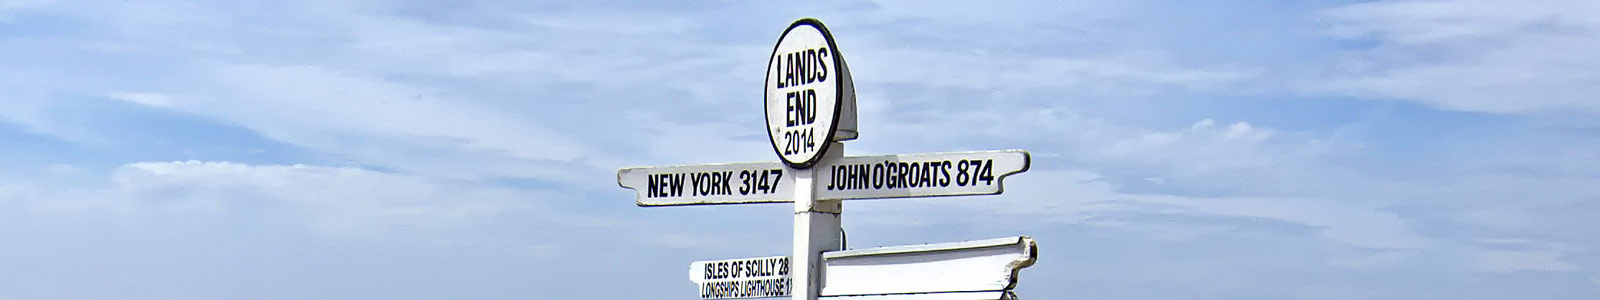 Things to do in Cornwall:  Visit Lands End